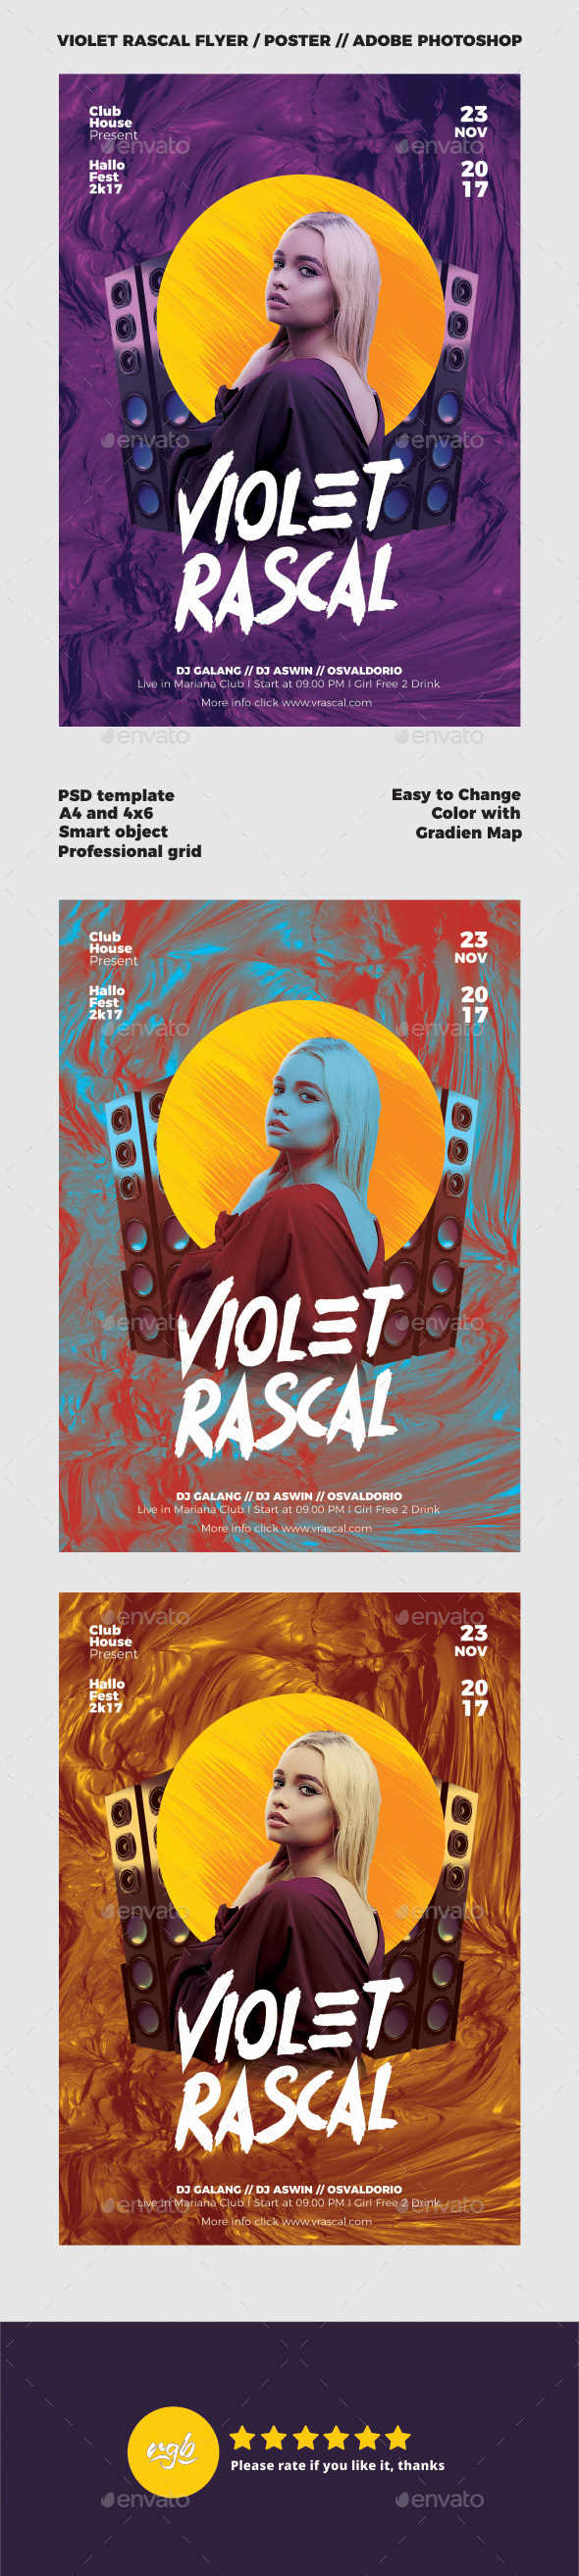 Violet Rascal DJ Flyer Template - Clubs & Parties Events